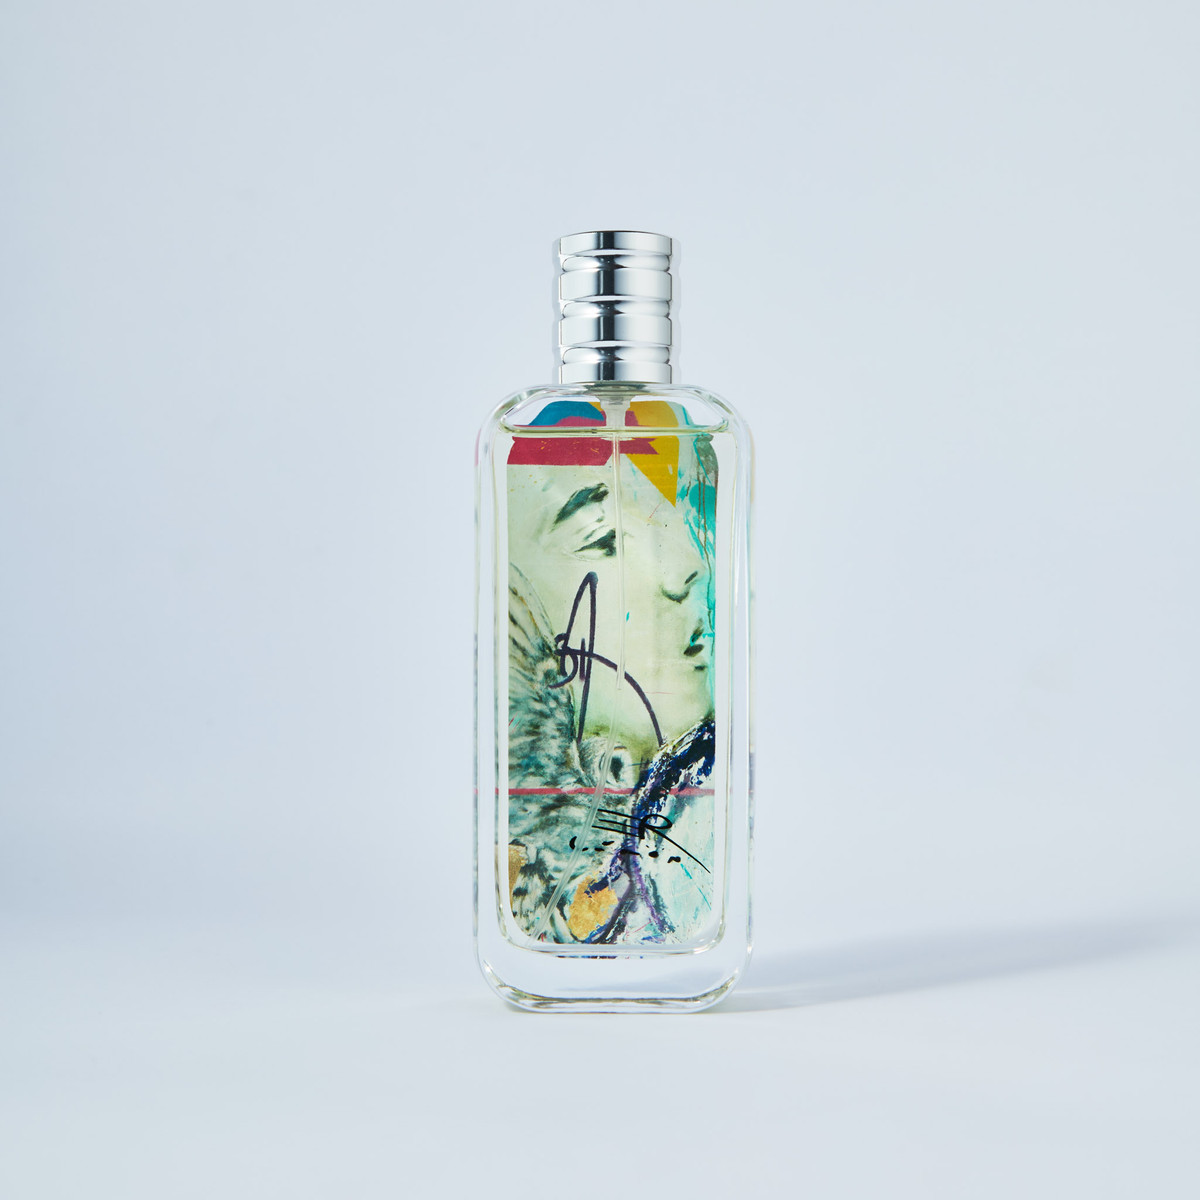 Tenacity and Adventure are all that you can find in this bold perfume for men by Liron!  The indulgent Liron for Men features notes of Green Apple, Italian Lemon, Geranium, Tonka Beans, Madagascar Vanilla, and Virginian Cedar.  You will receive a Free Poster of this piece of art